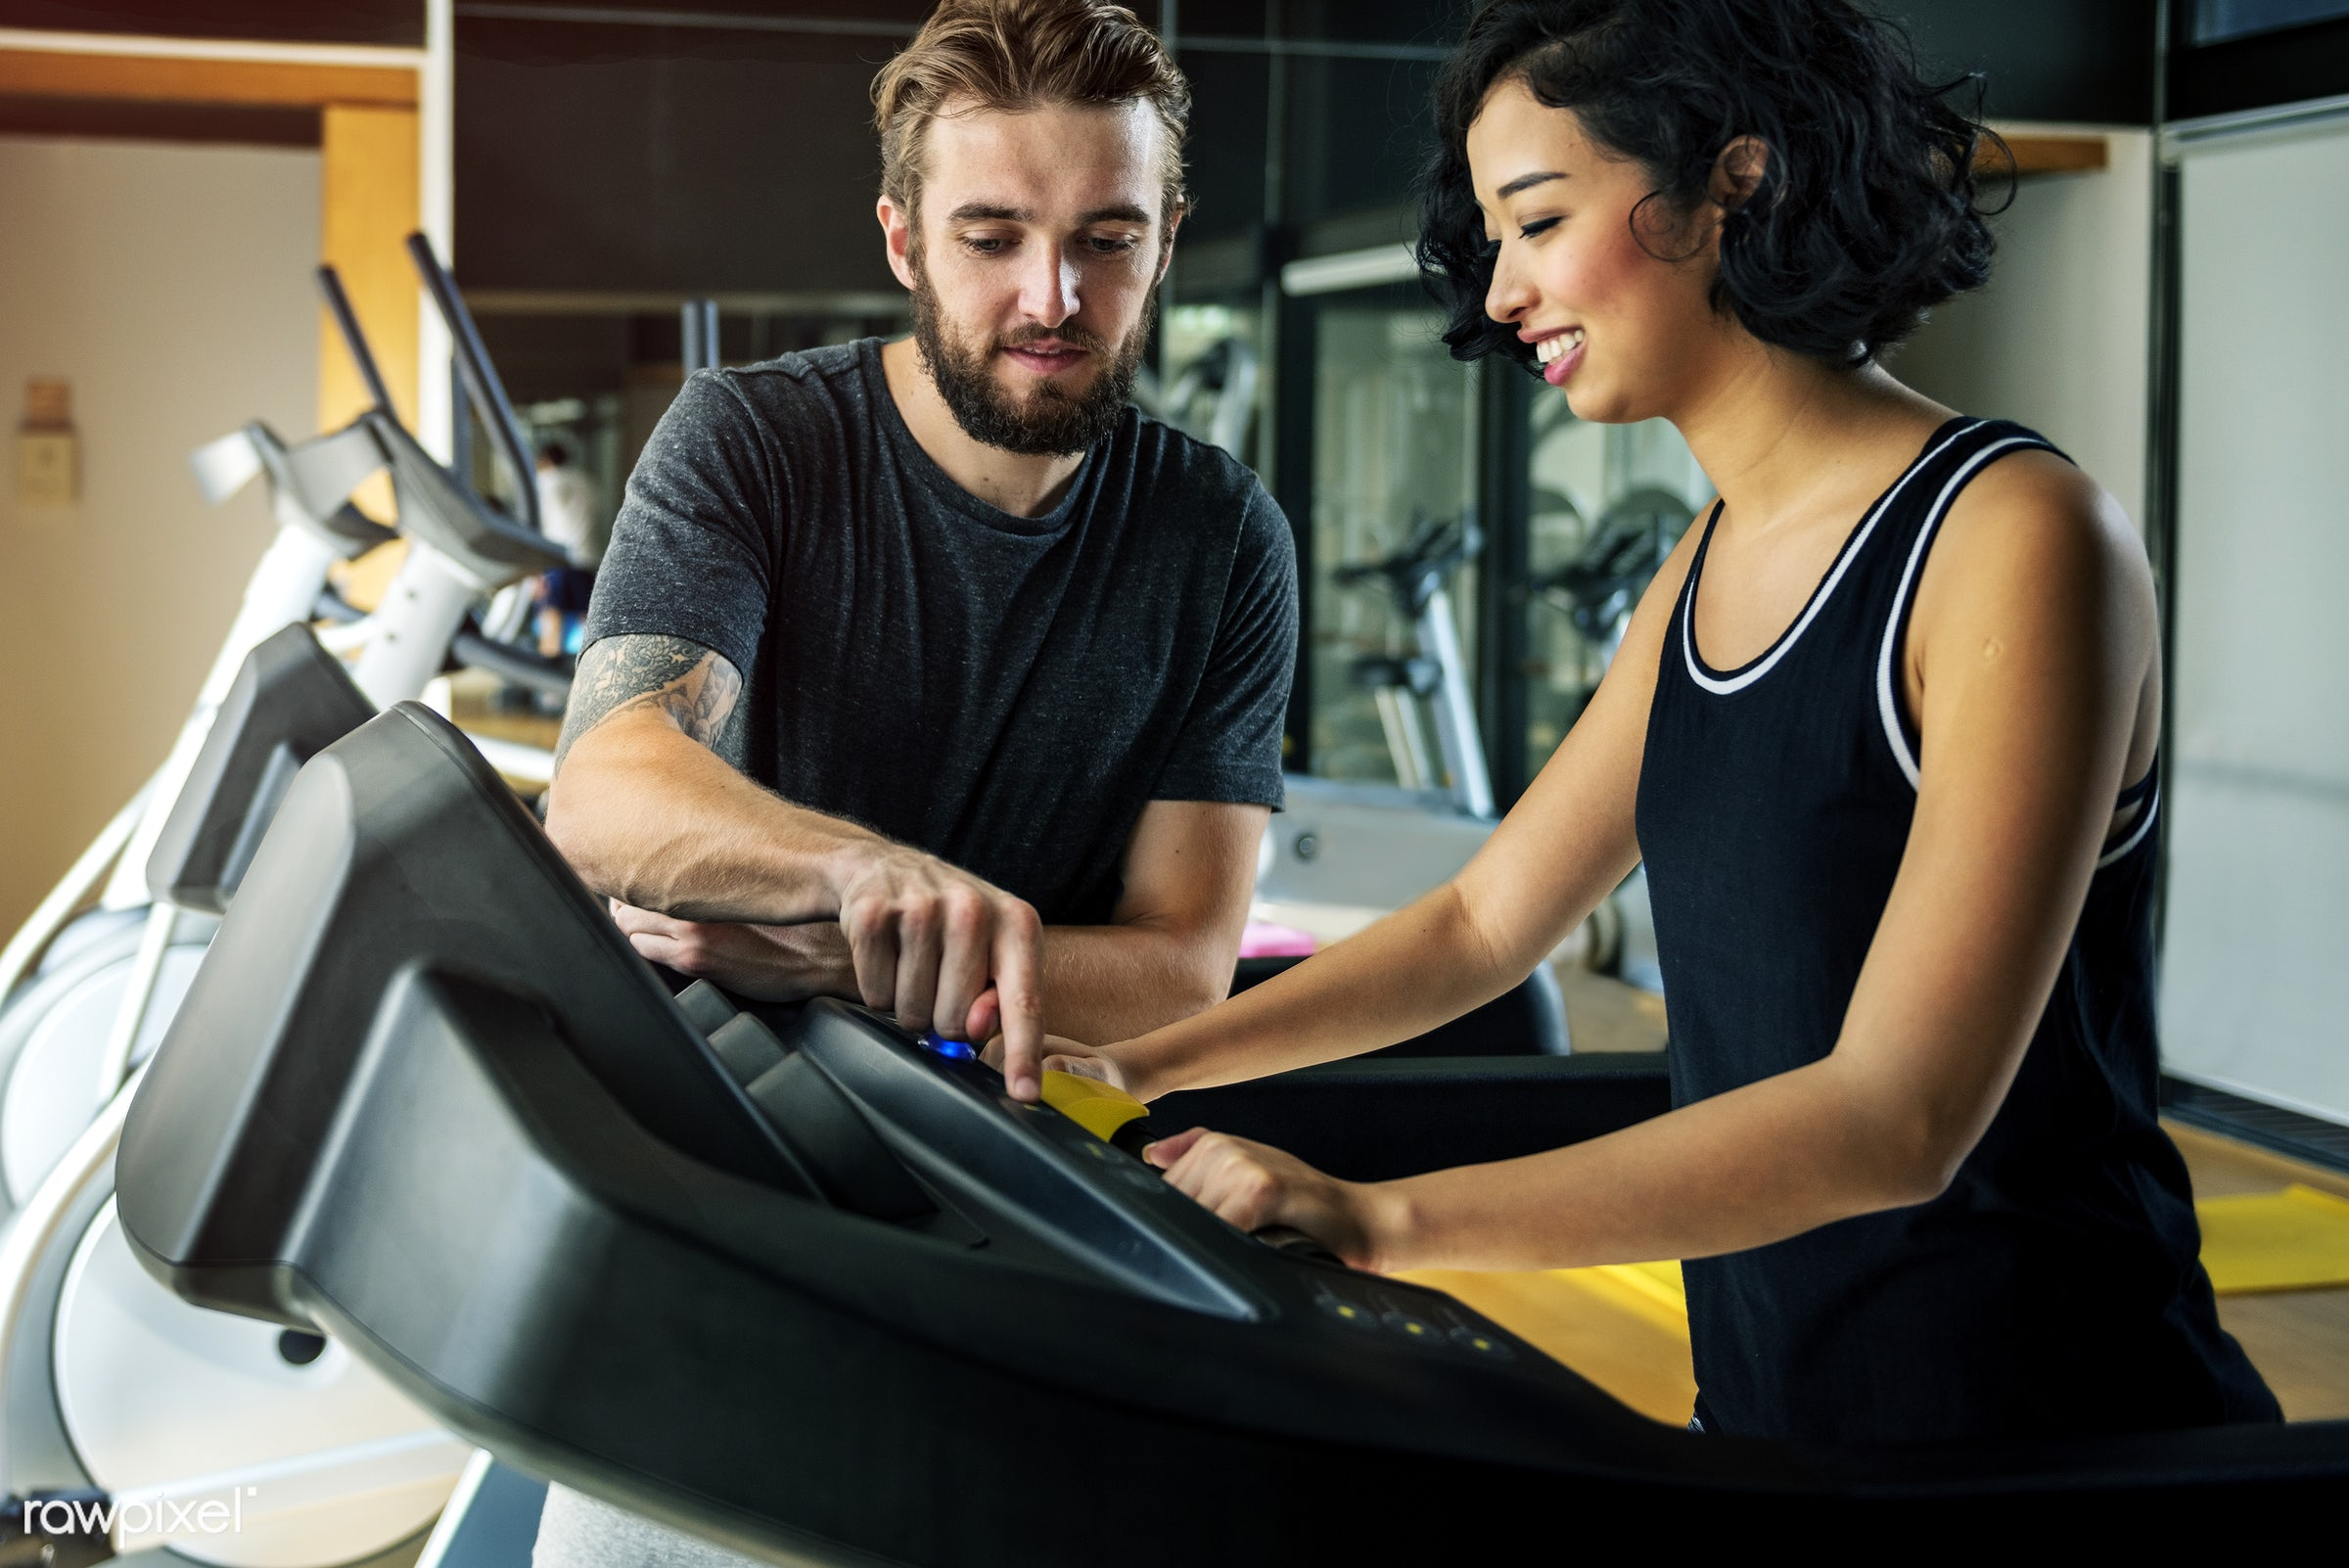 Couple working out together at the gym - fitness, workout, sport, trainer, leisure, wellness, active, adult, asian, athlete...